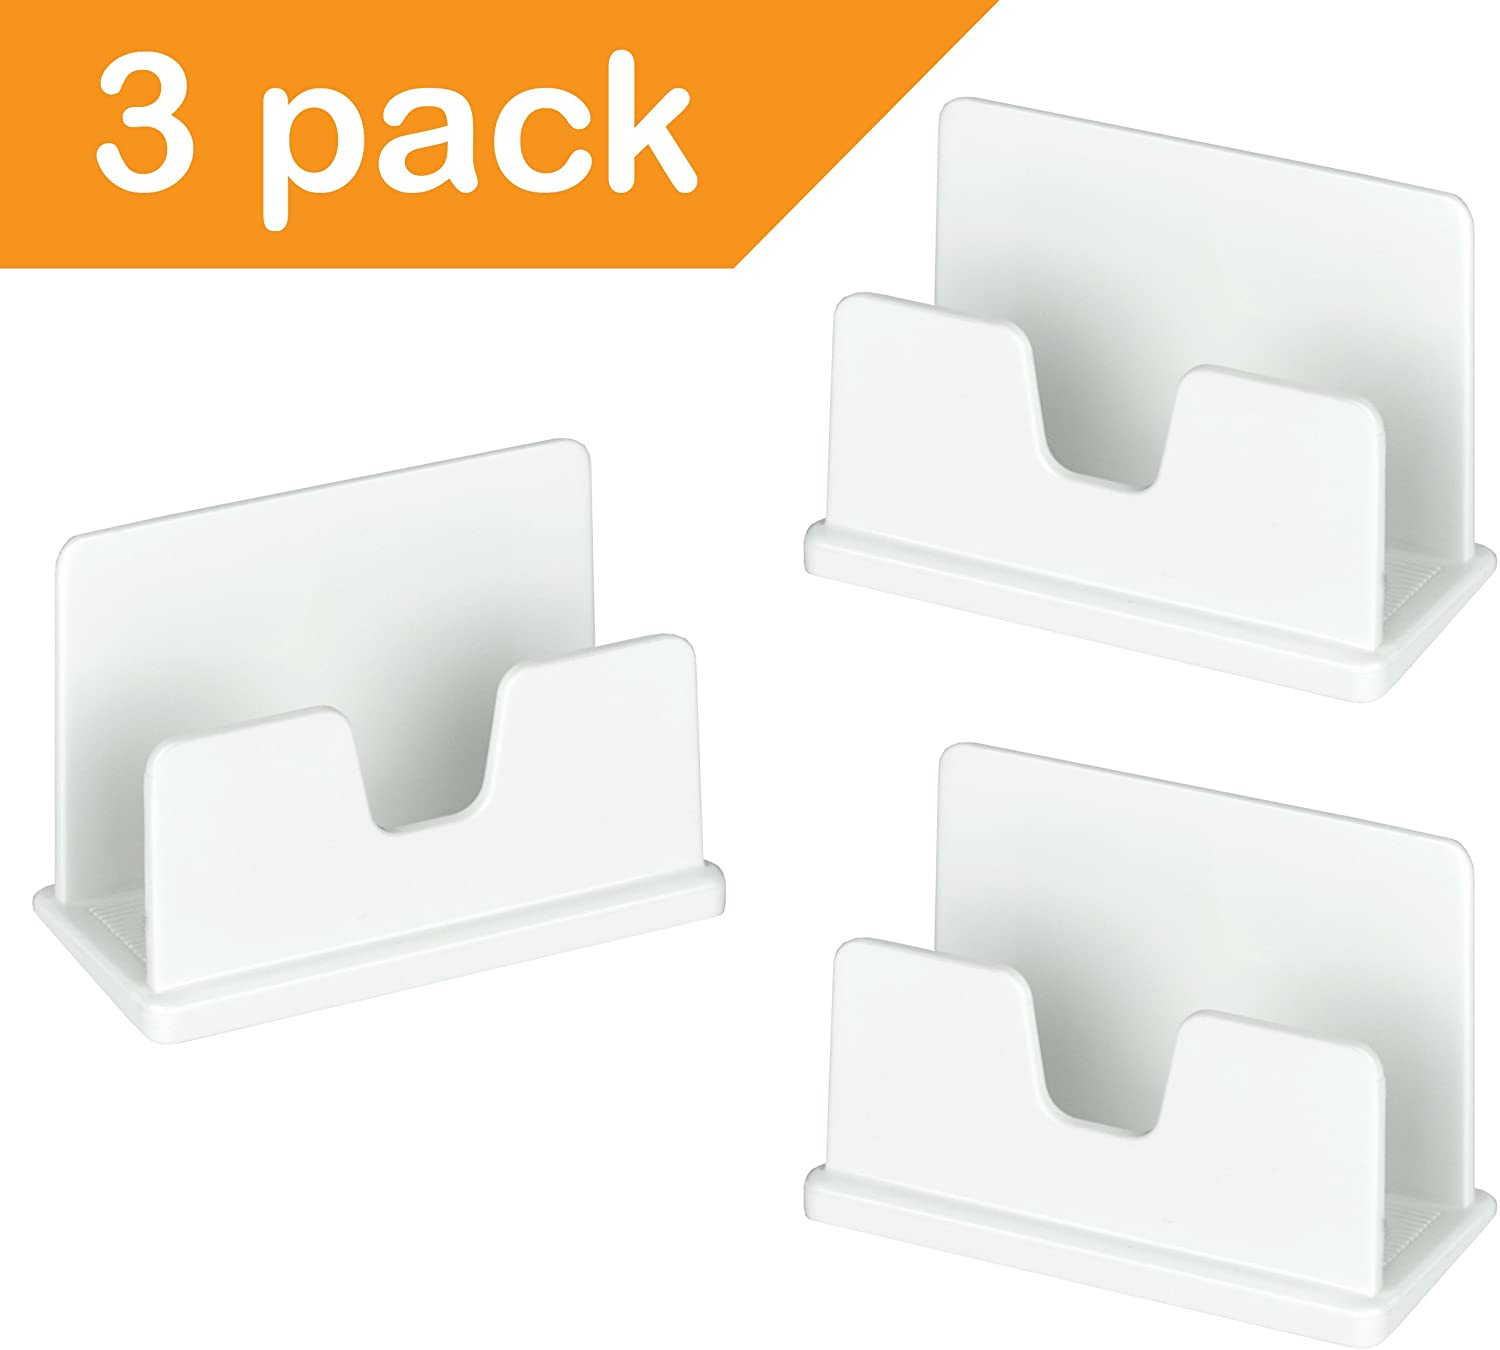 Acrimet Business Card Holder (3 Pack) (White Color)